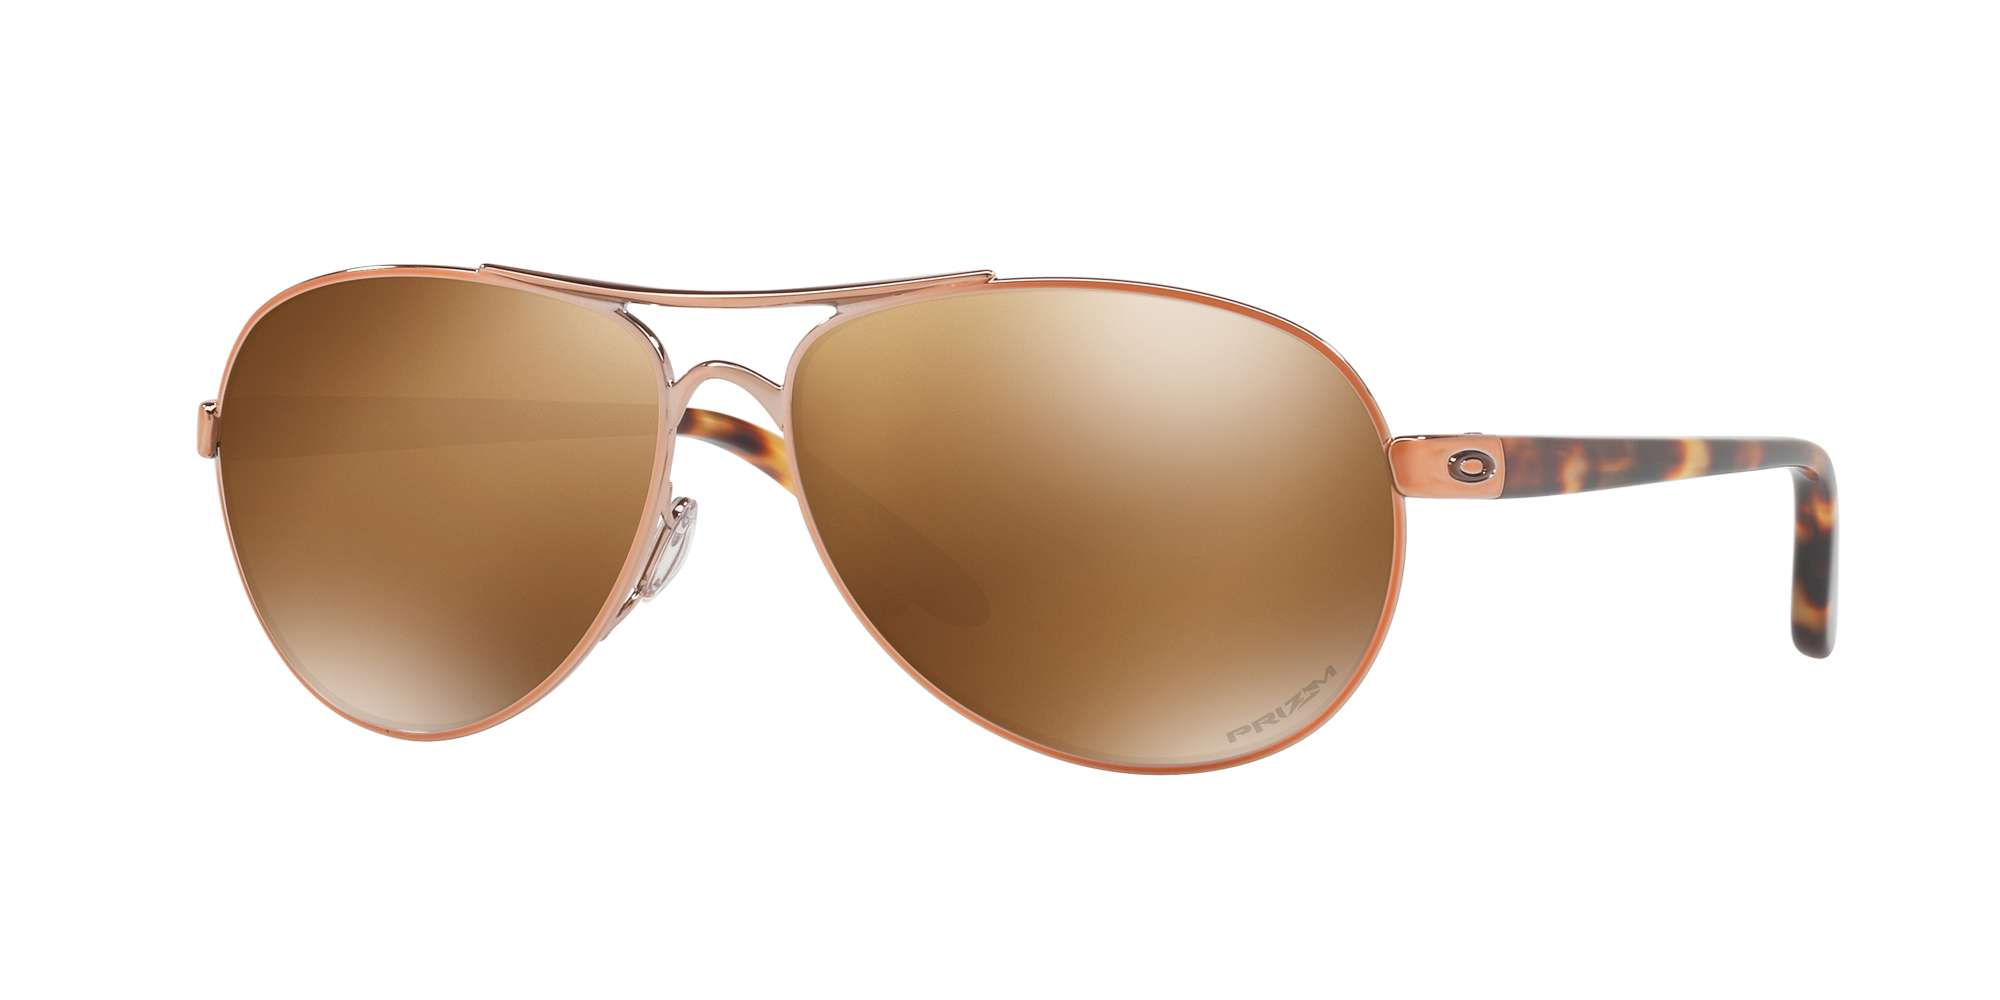 ROSE GOLD / PRIZM TUNGSTEN POLARIZED lenses